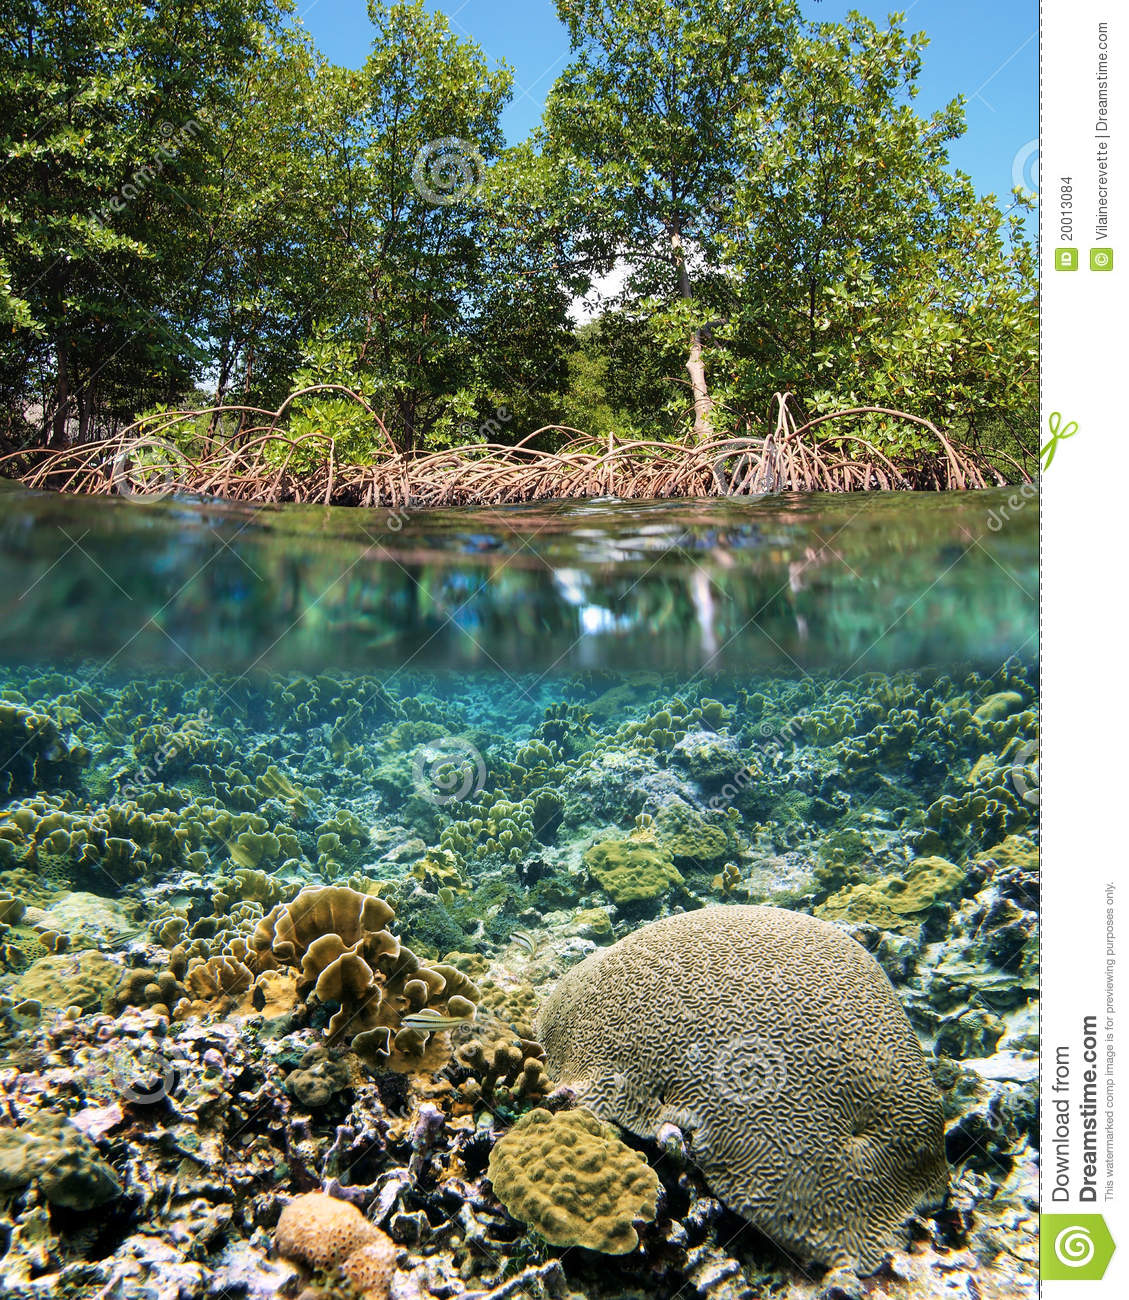 Mangrove forests: ecosystems